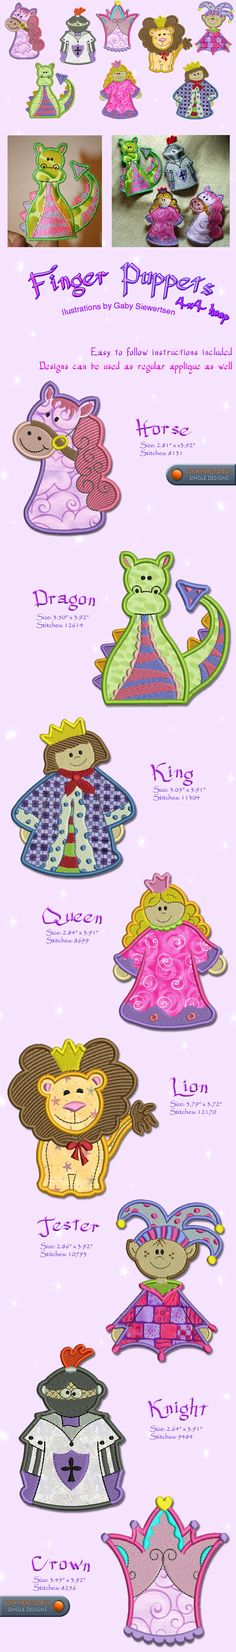 toy Embroidery Designs Free Embroidery Design Patterns Applique